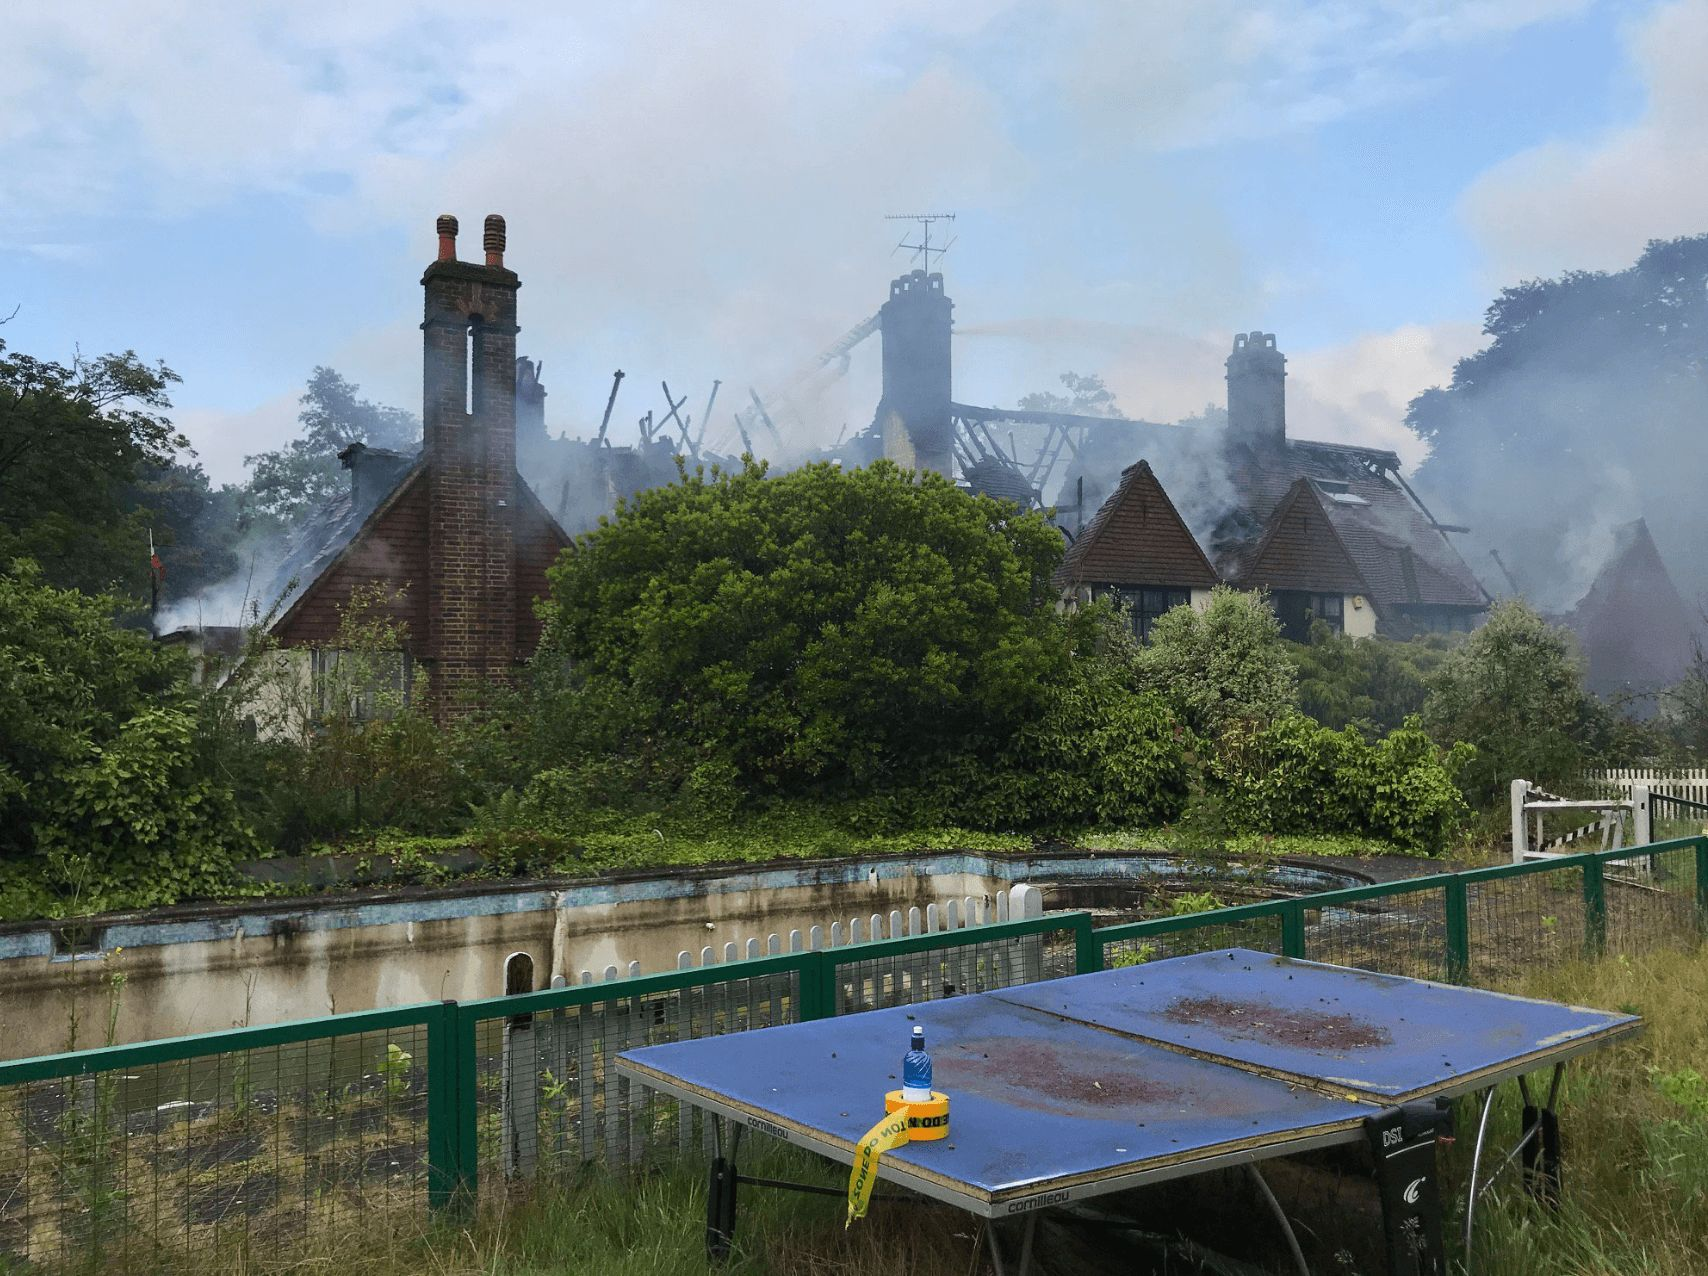 Image may contain: Oritse Williams house fire, Oritse Williams, house, fire, mansion, croydon, london, fire, Tub, Hot Tub, Jacuzzi, Transportation, Vehicle, Watercraft, Vessel, Roof, Shelter, Rural, Countryside, Building, Nature, Outdoors